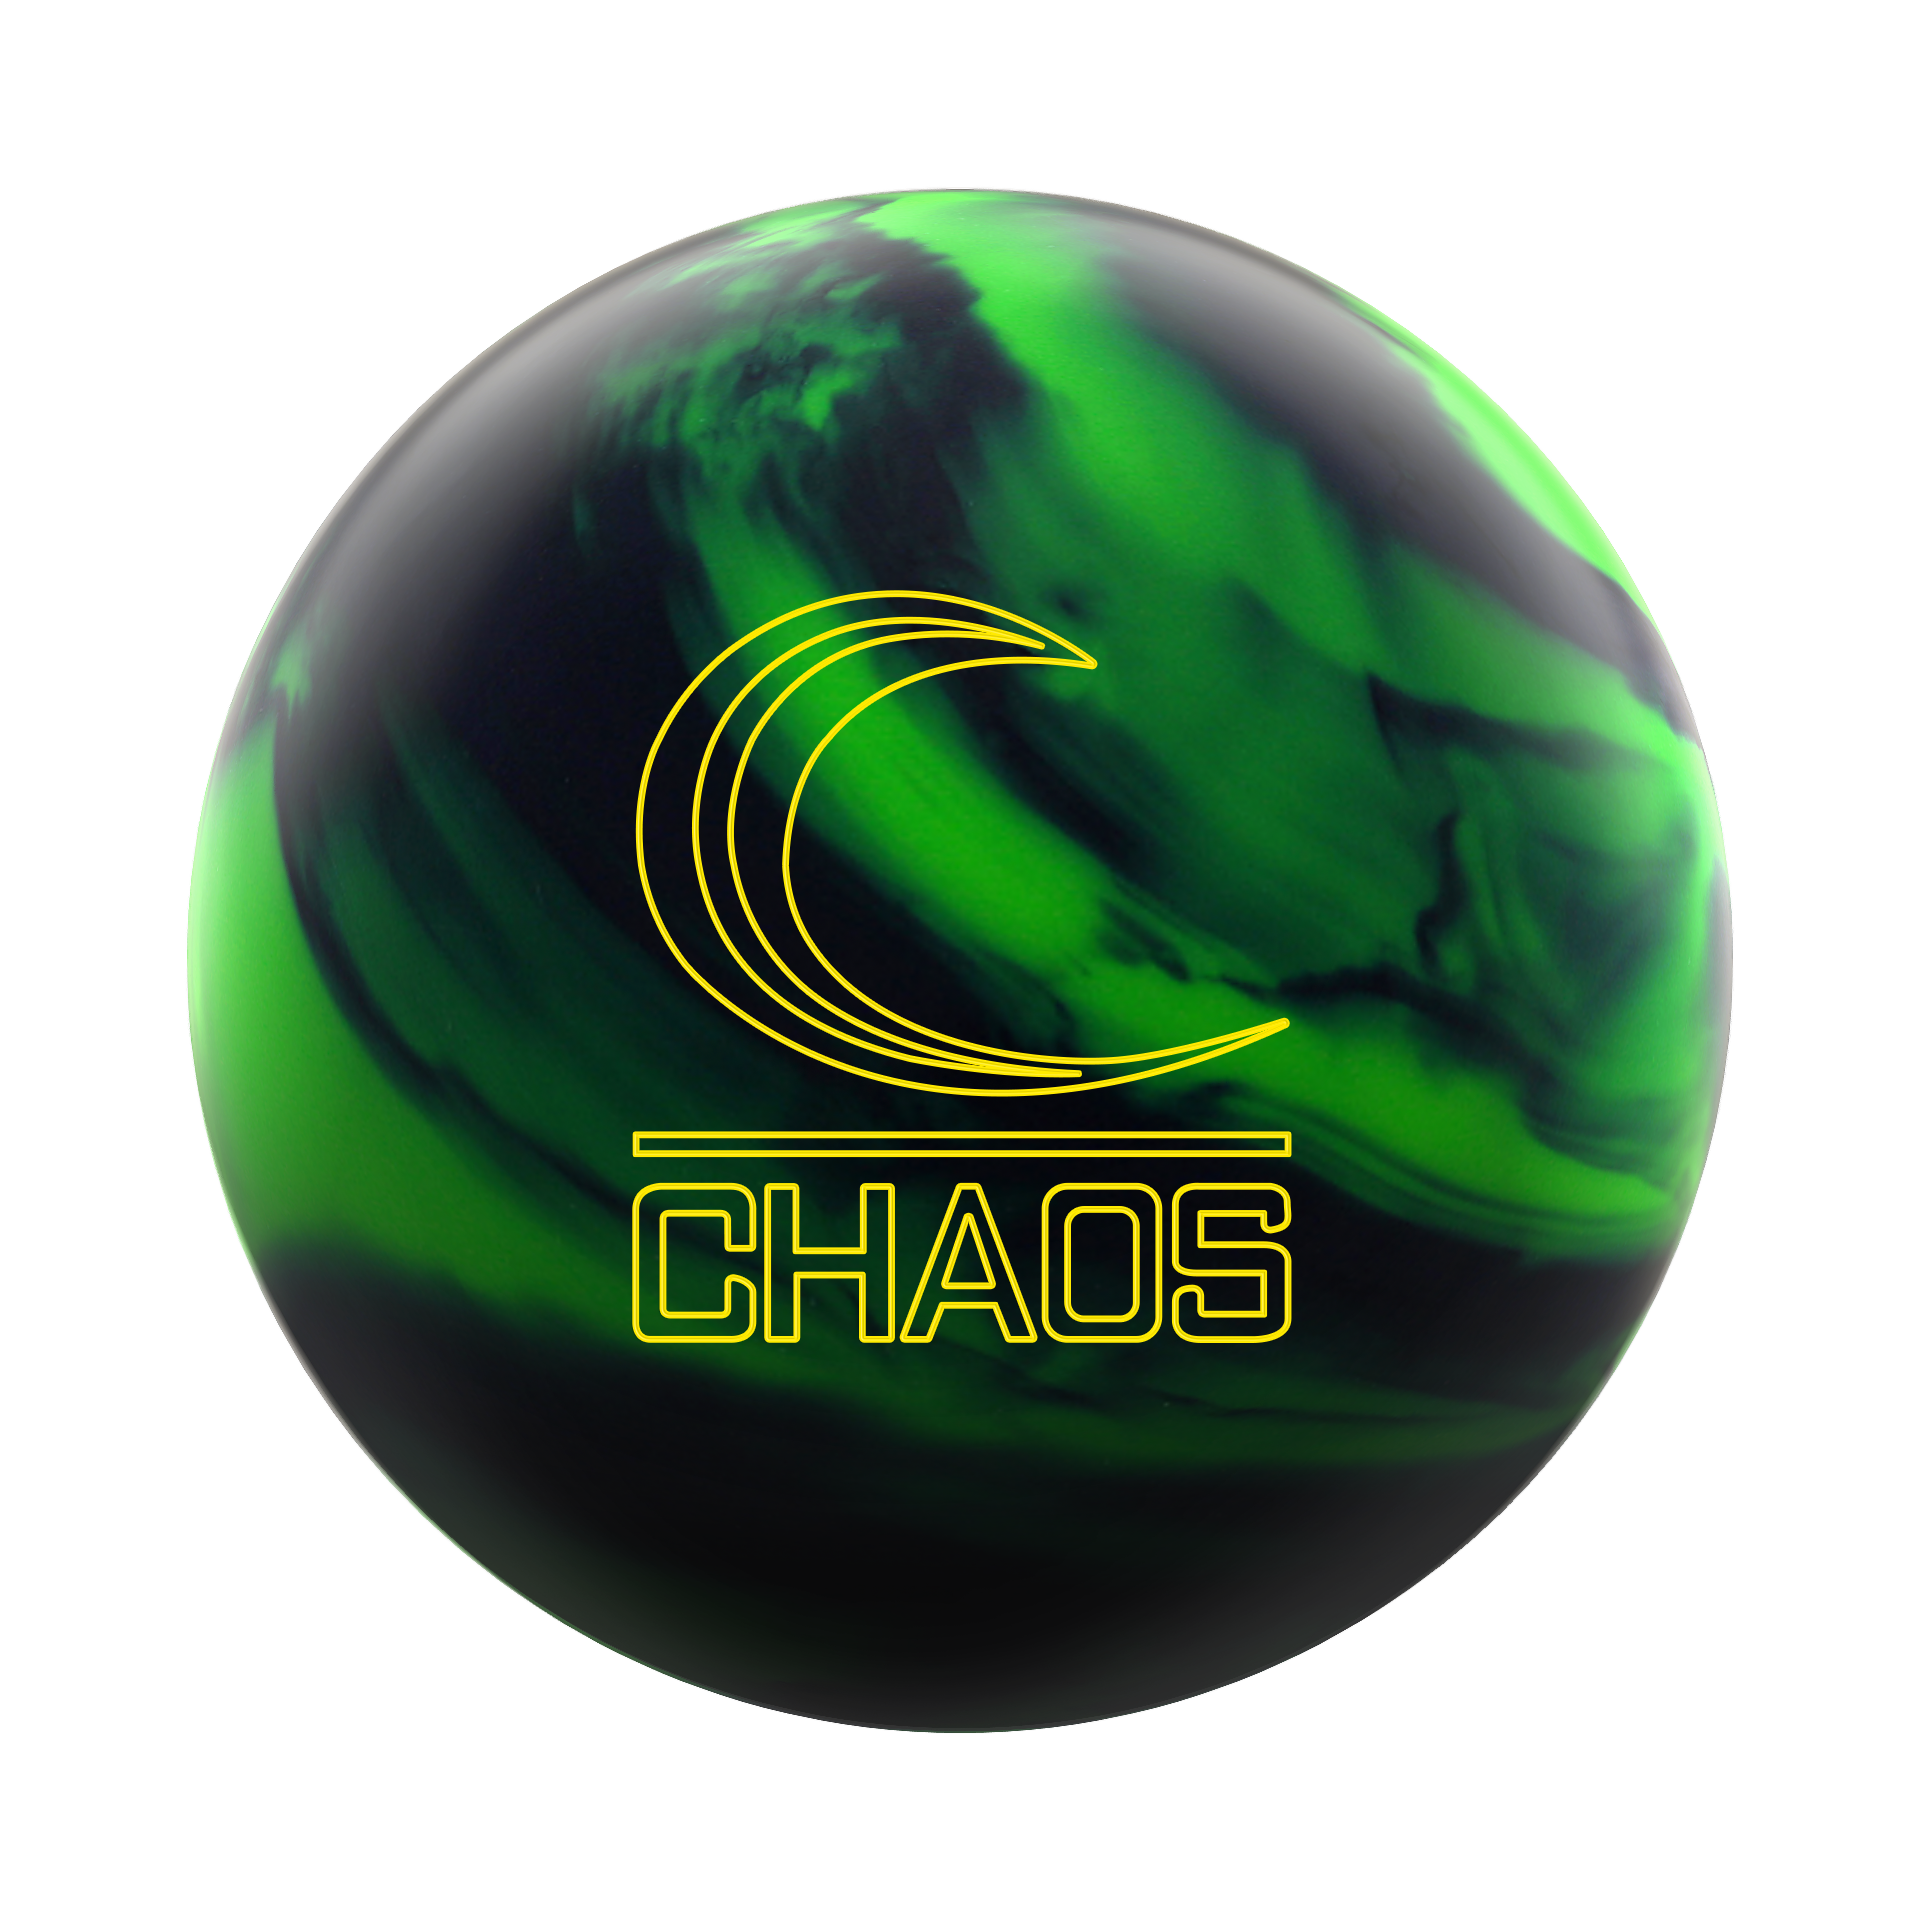 846d50290dcad Columbia 300 Chaos Bowling Ball- $139.95 Heats Pro Shop